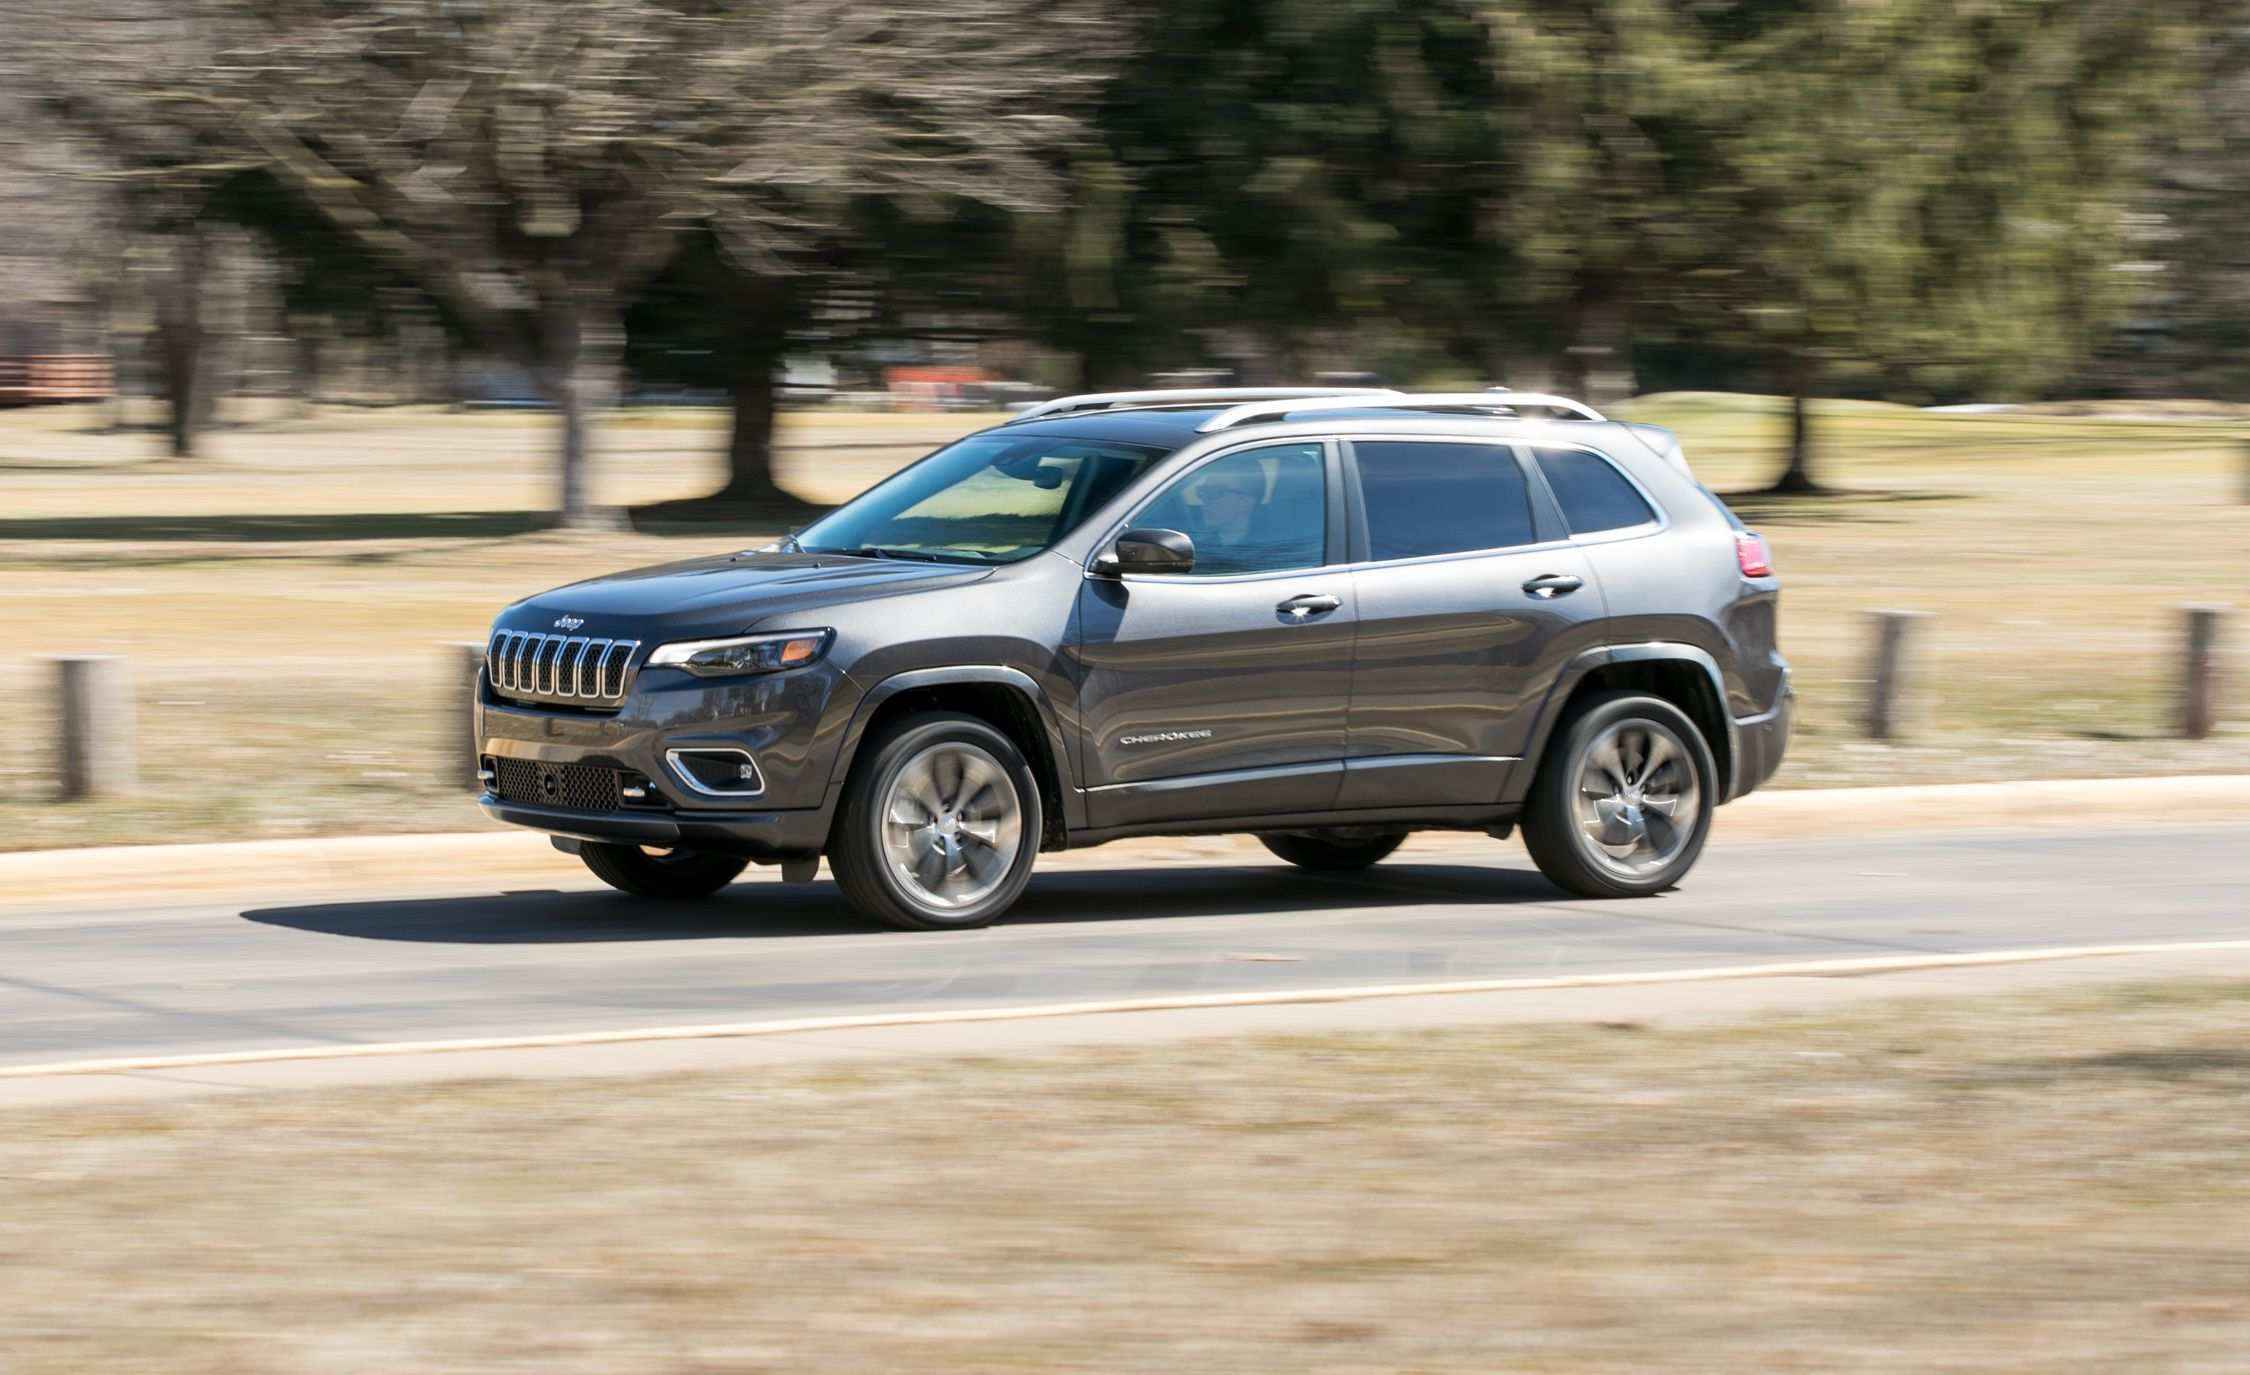 28 Best 2019 Jeep 2 0 Turbo Mpg Concept